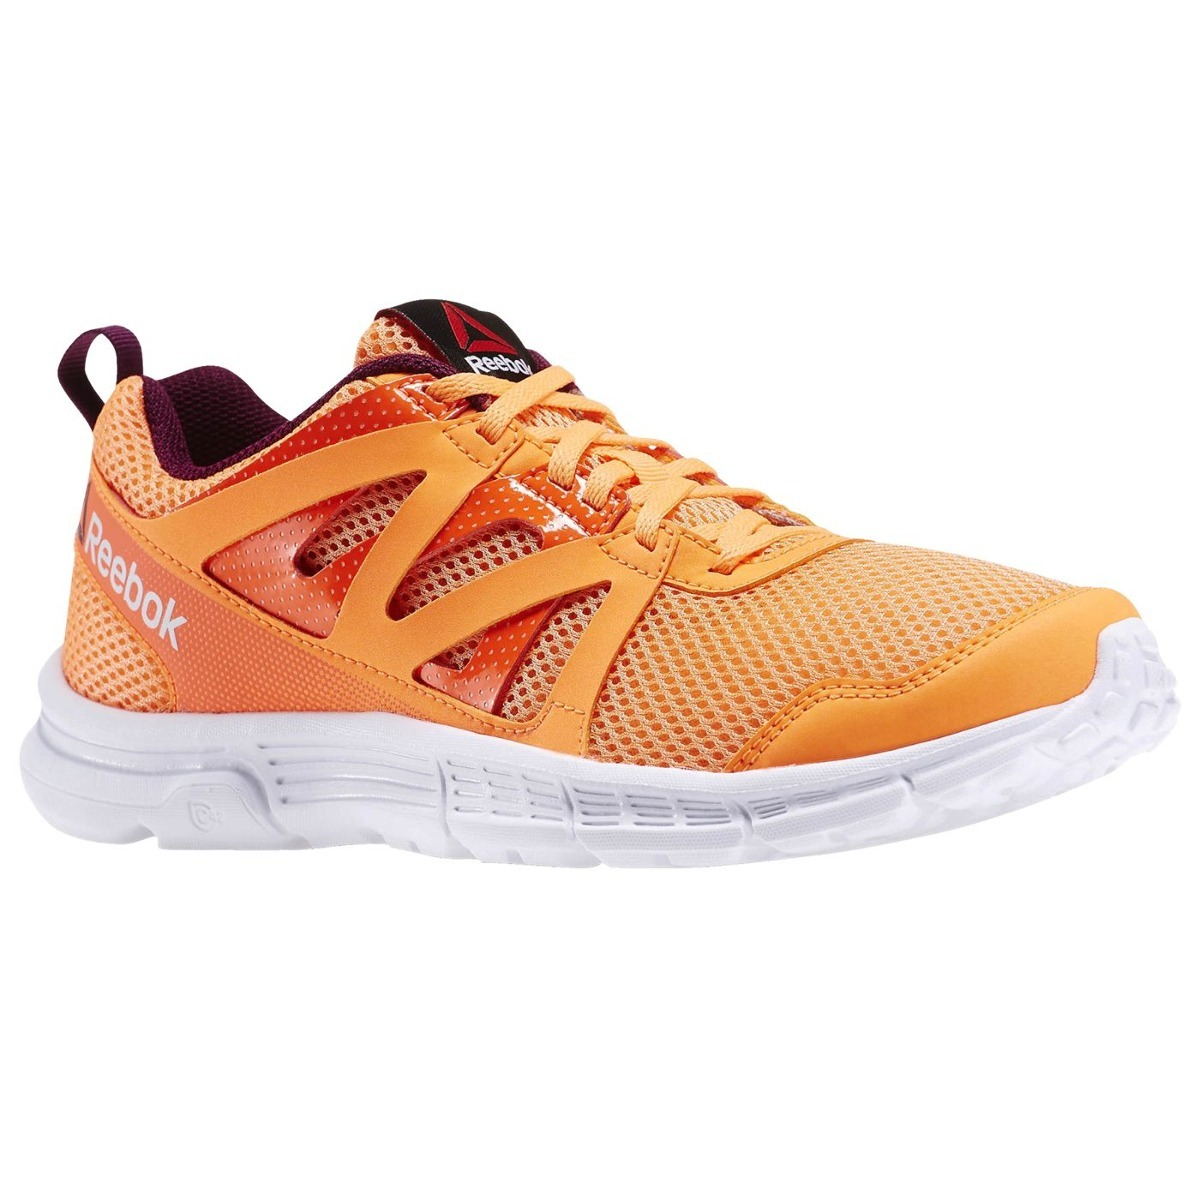 Reebok Zapatillas V68257 0 Run Supreme 2 Pv0ymwON8n